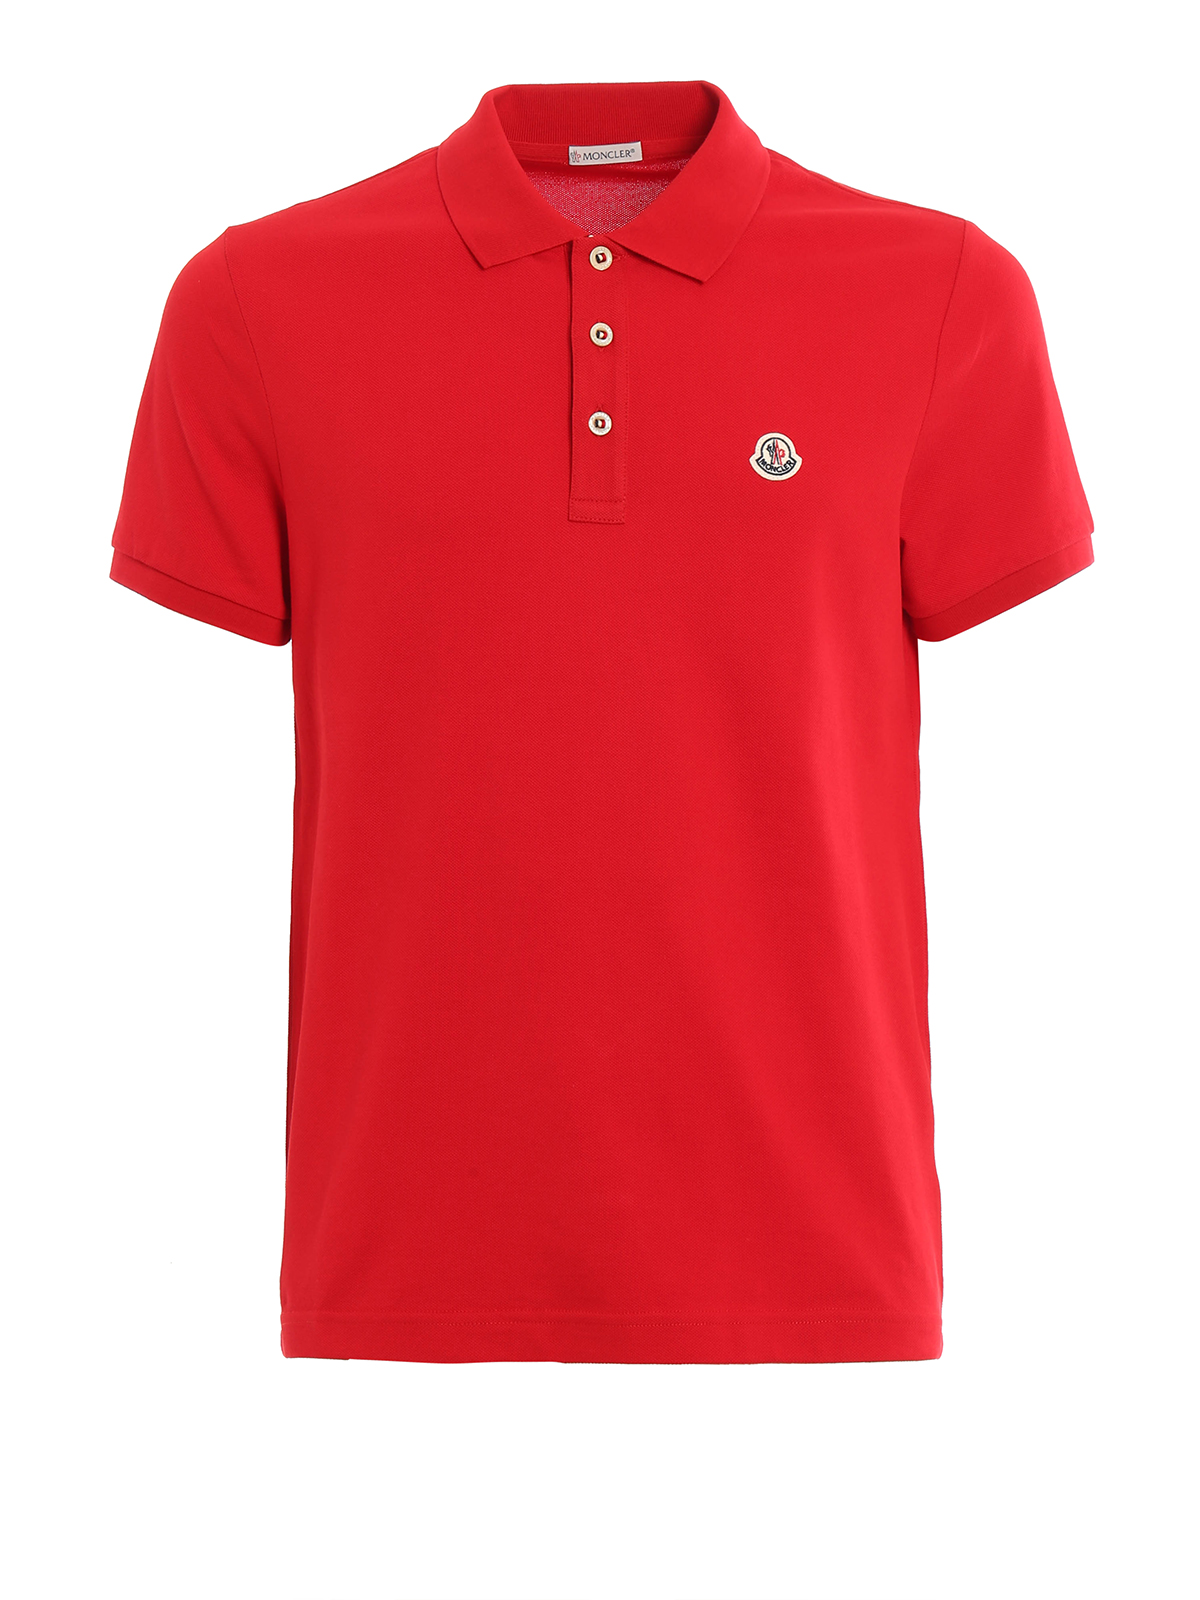 plain cotton pique polo shirt by moncler polo shirts